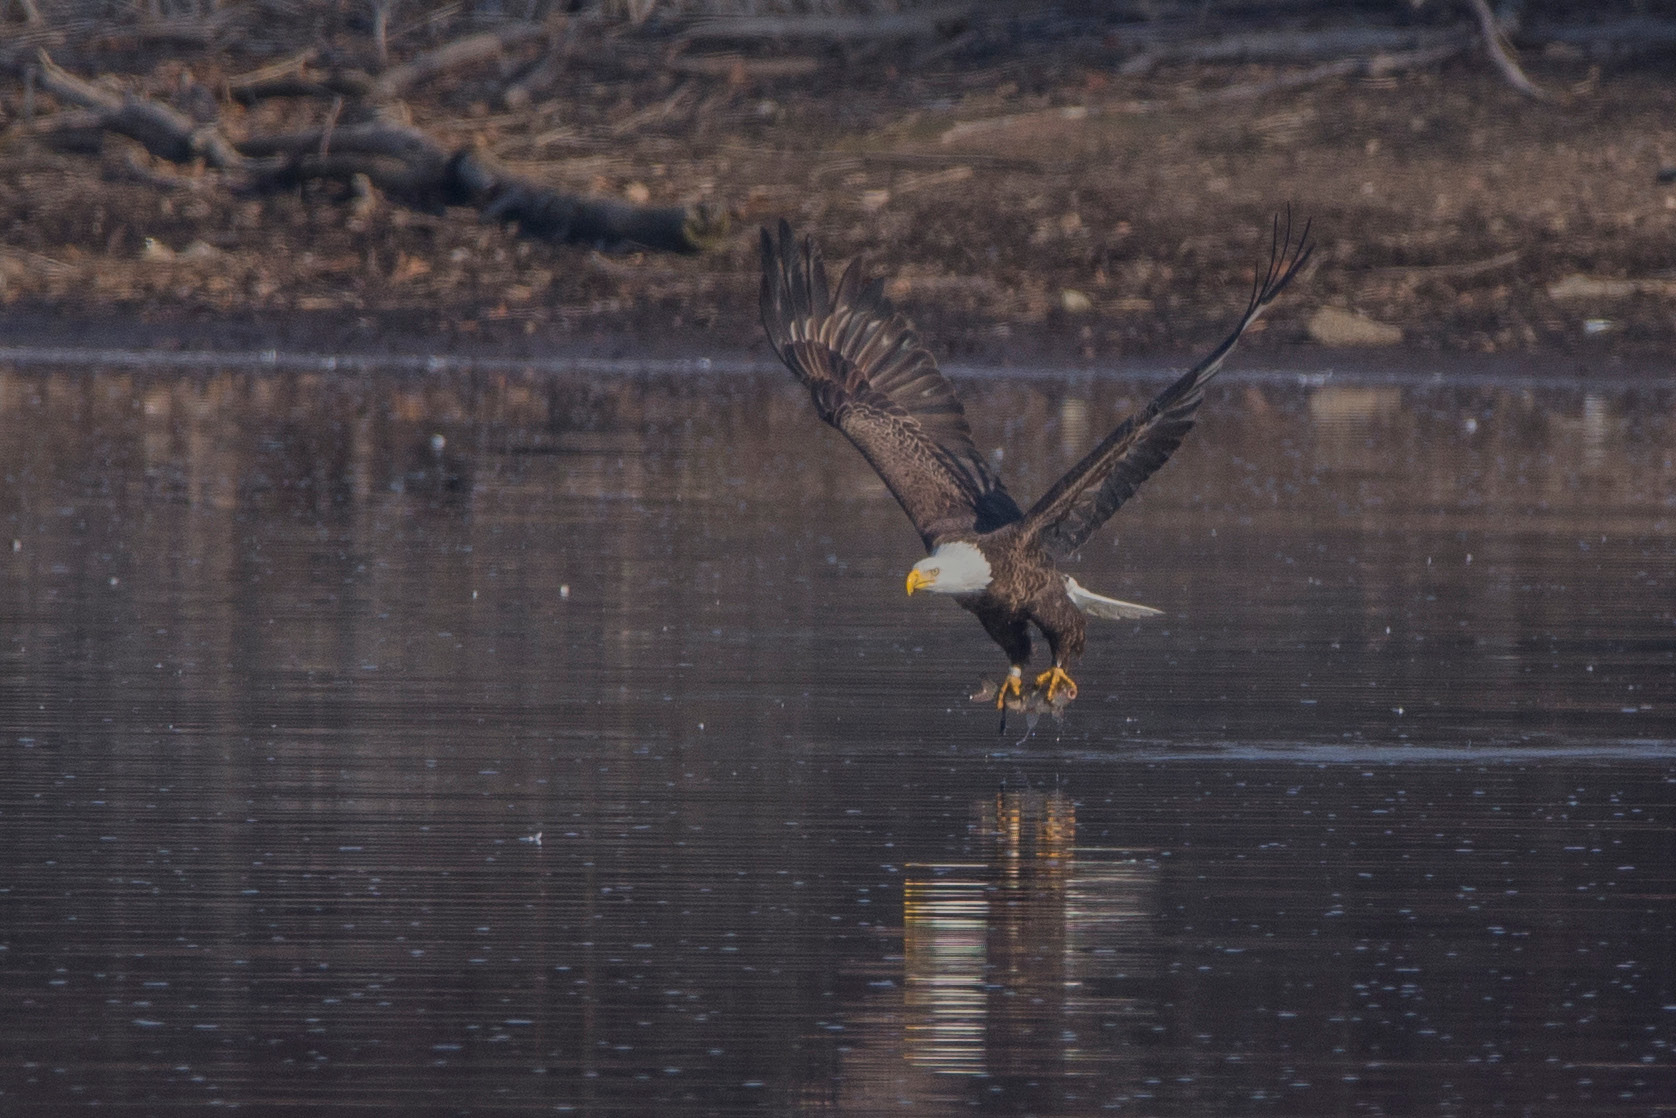 A bald eagle carries off a fish from Hanover Pond in Meriden Thursday morning. | Photos by Richie Rathsack, Record-Journal